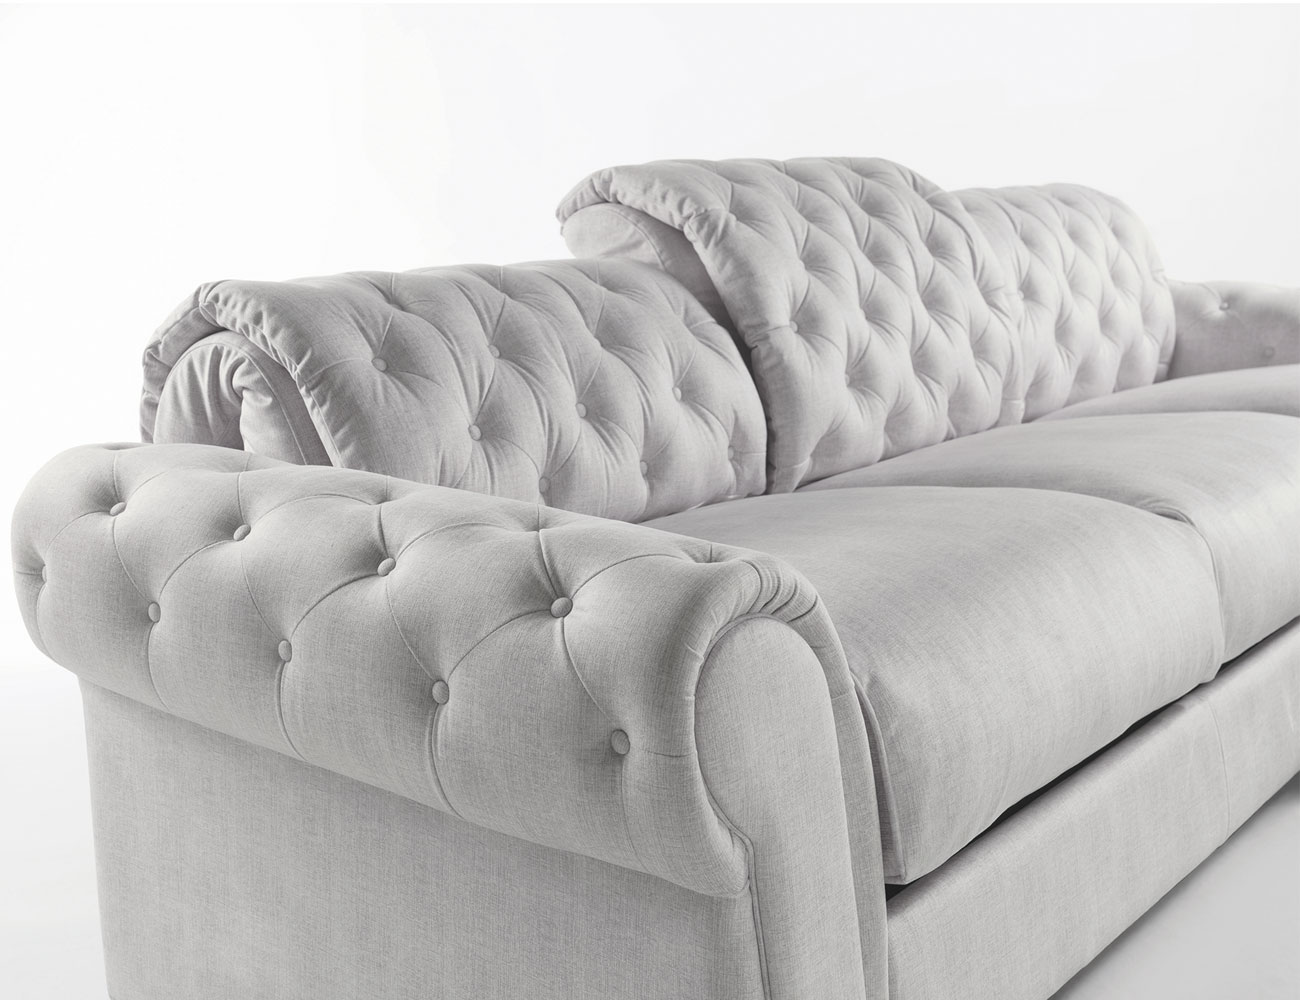 Sofa chaiselongue gran lujo decorativo capitone blanco tela 160